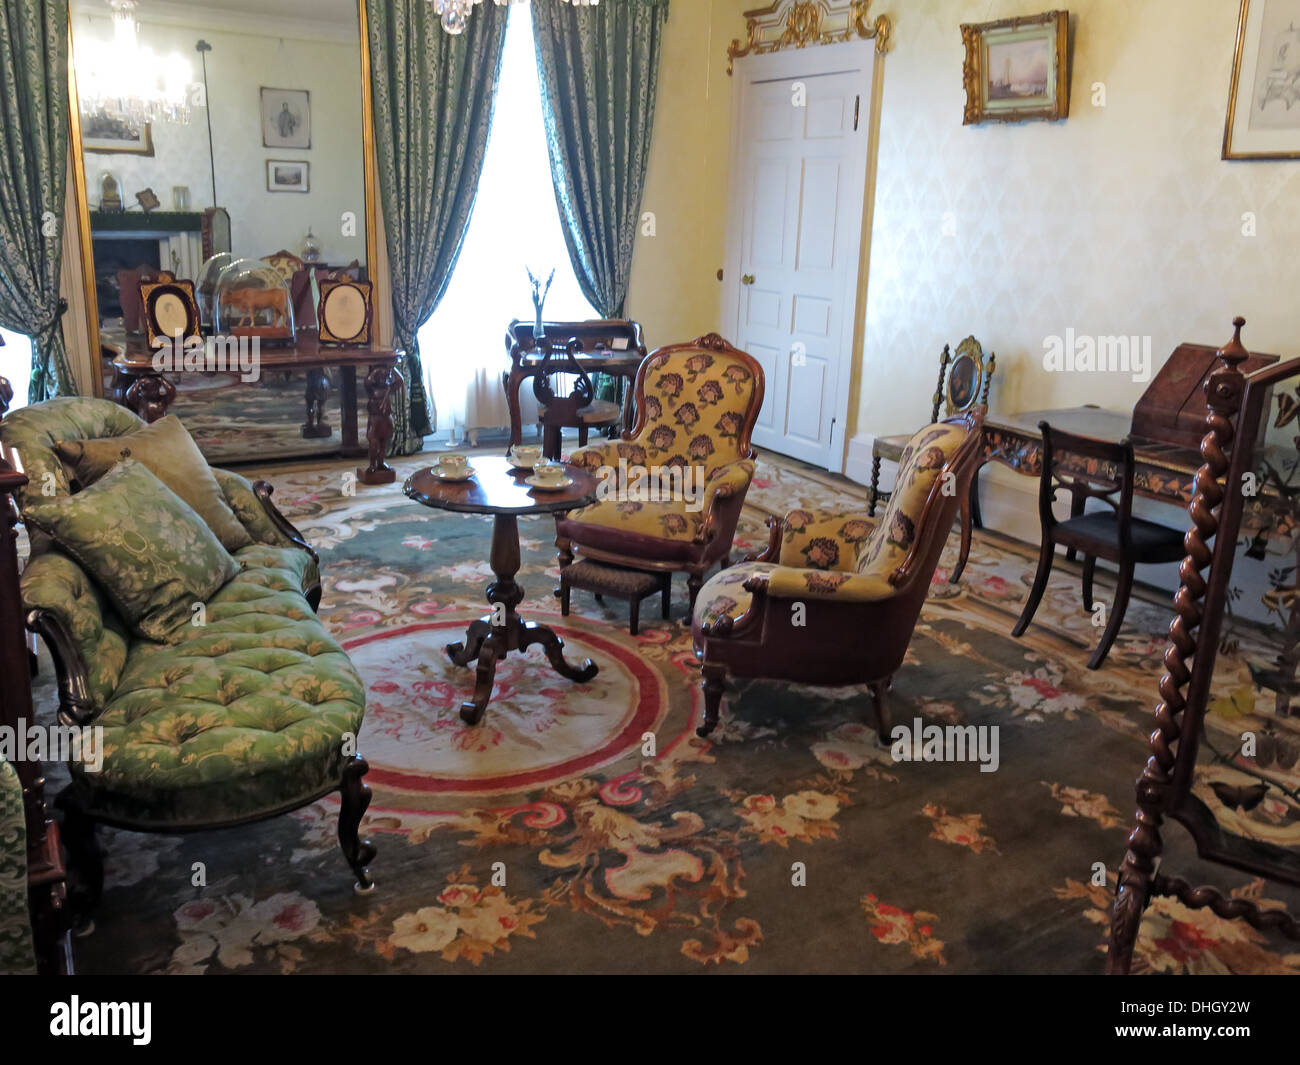 Bedroom, Dunham Massey, in the evening. NT near Altrincham, Cheshire, England, UK - Stock Image